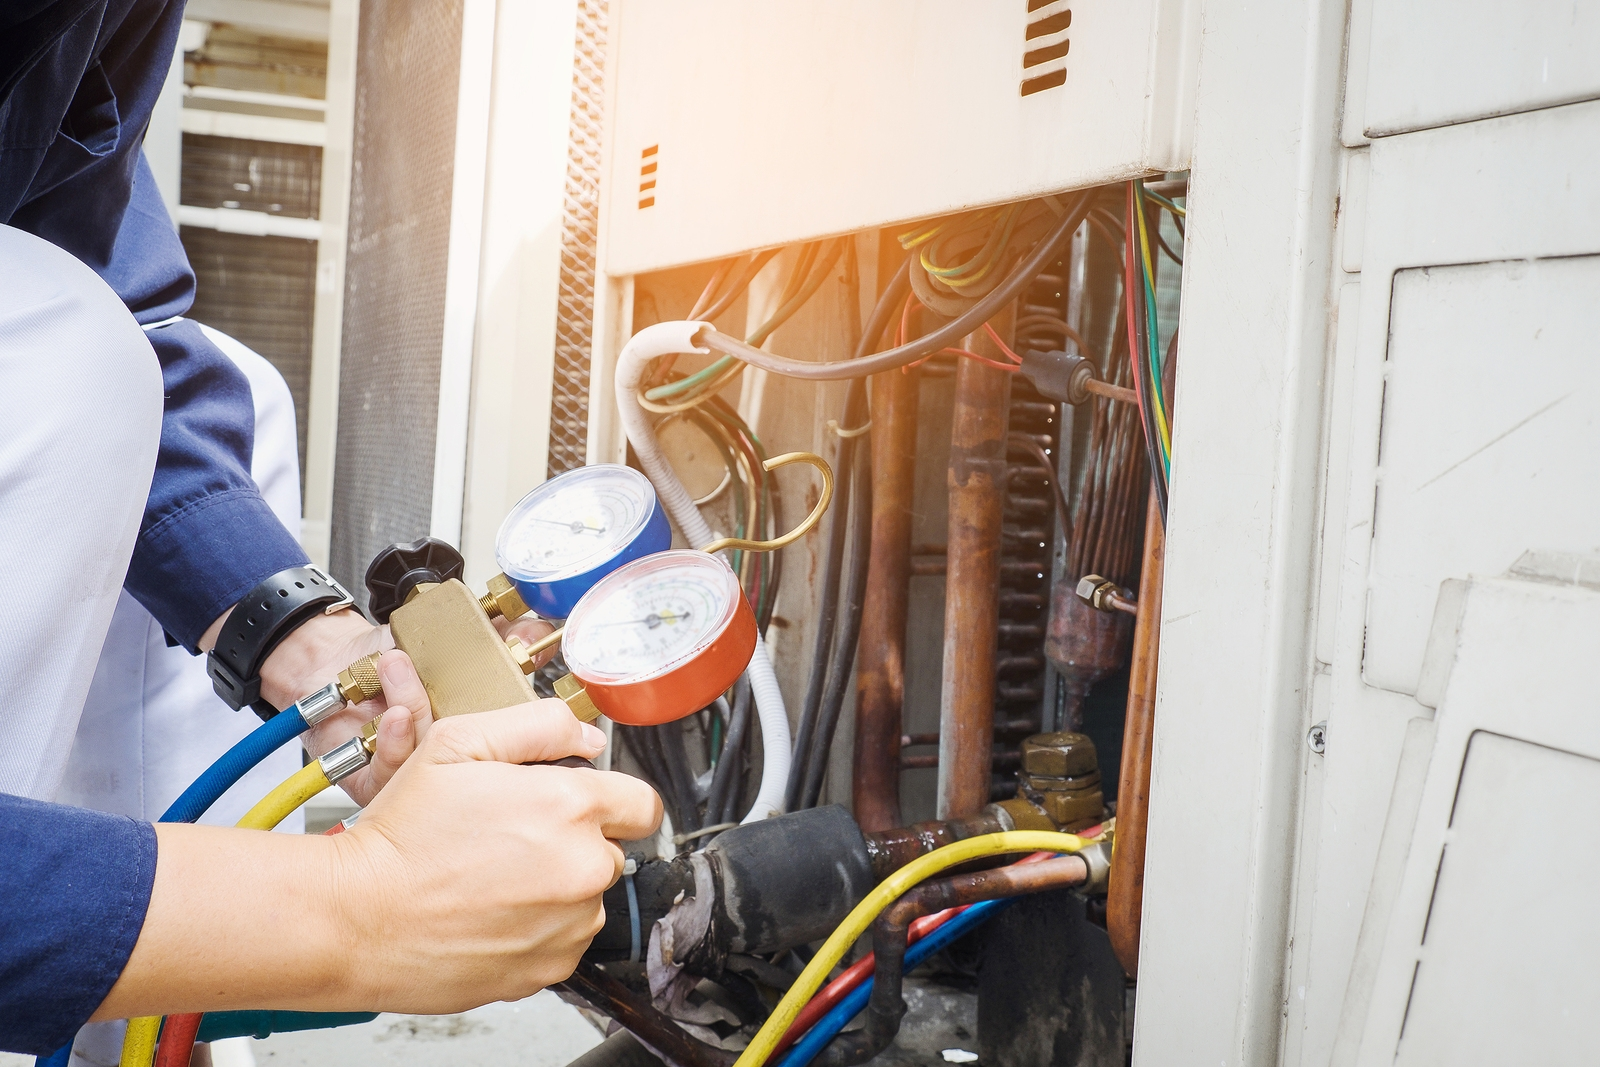 heating and air conditioning service companies near me